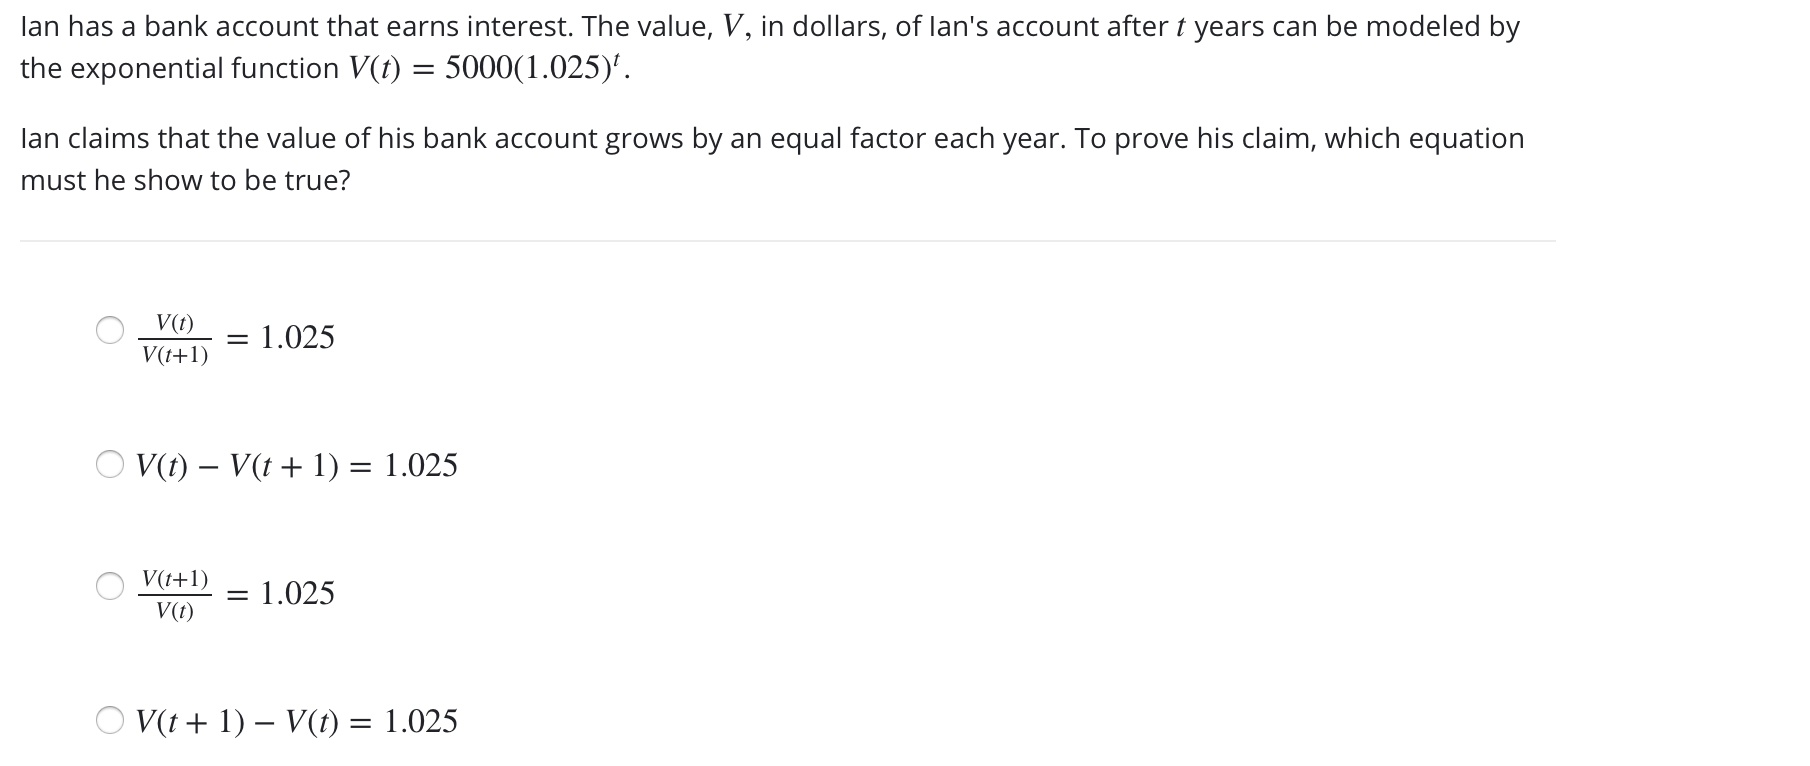 lan has a bank account that earns interest. The value, V, in dollars, of lans account after t years can be modeled by the ex